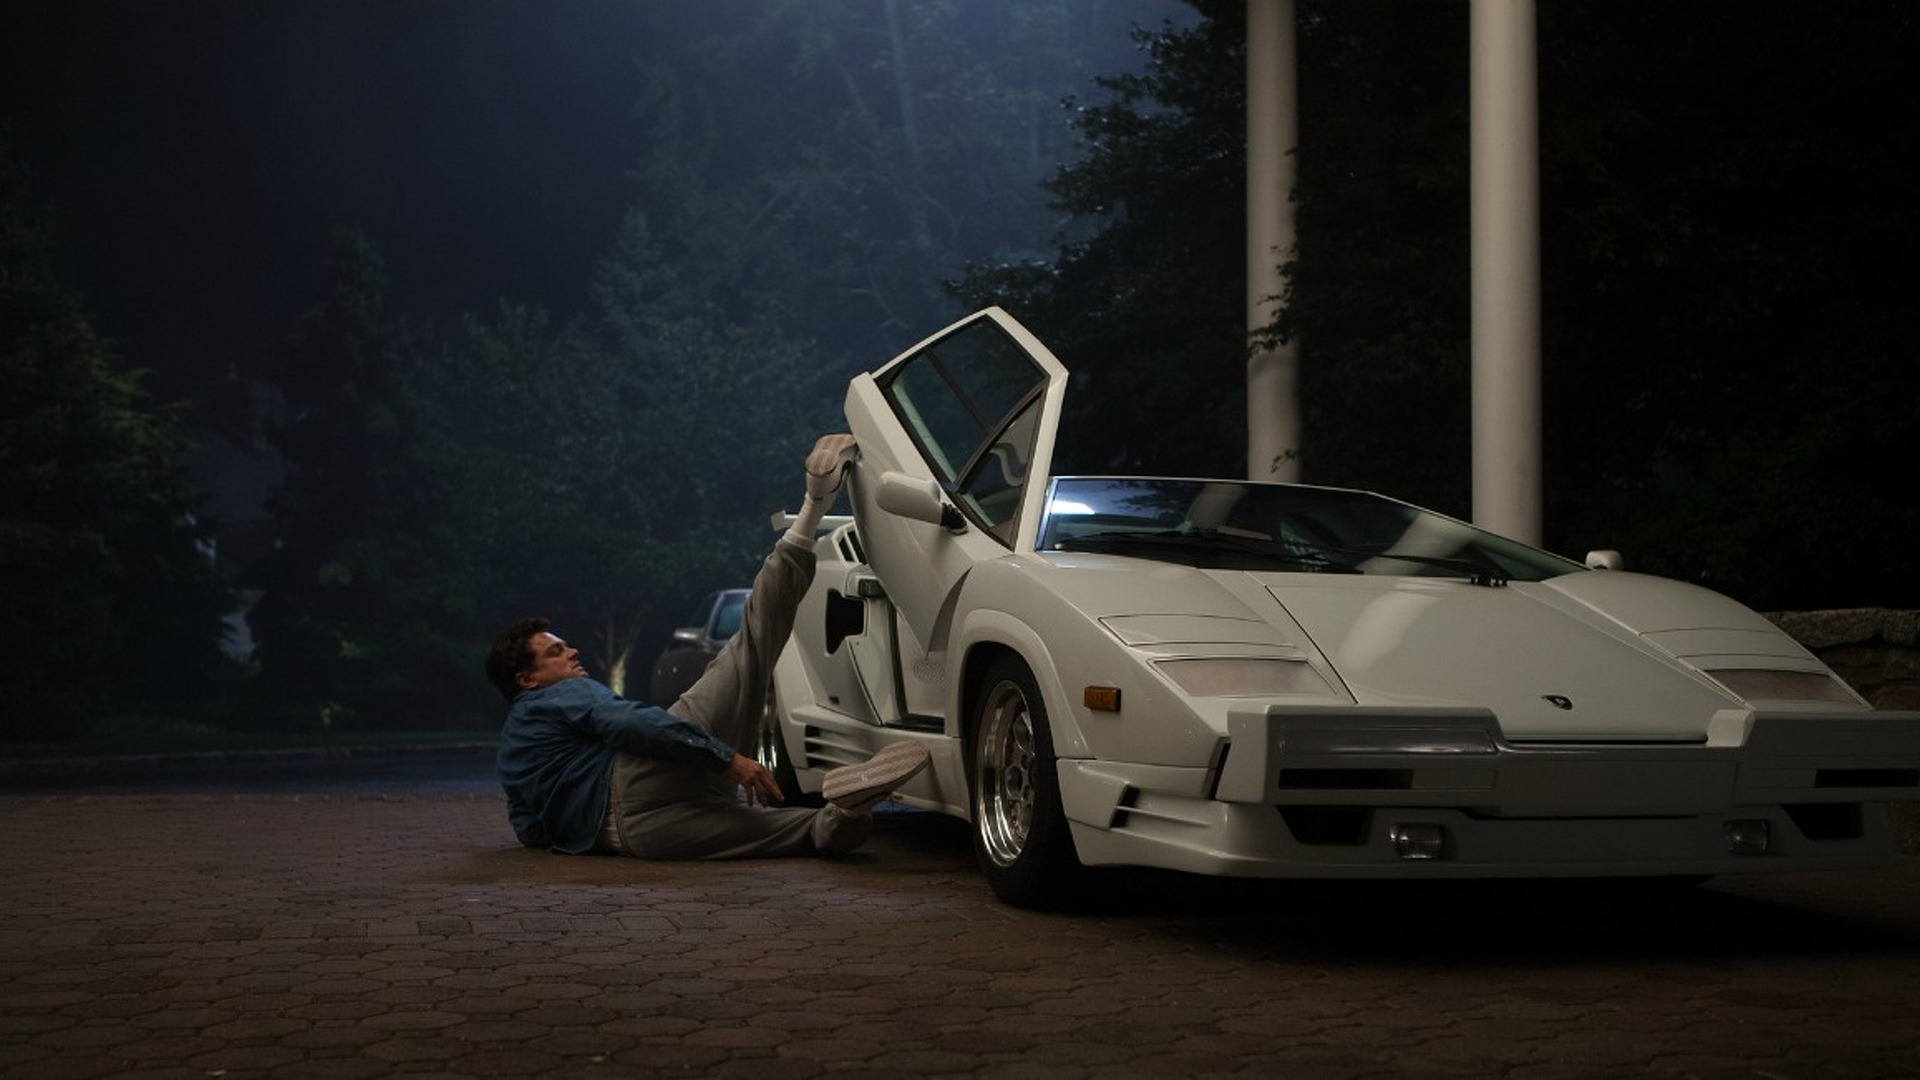 Wolf of wall street directors wrecked a real lamborghini for Wall street motor cars